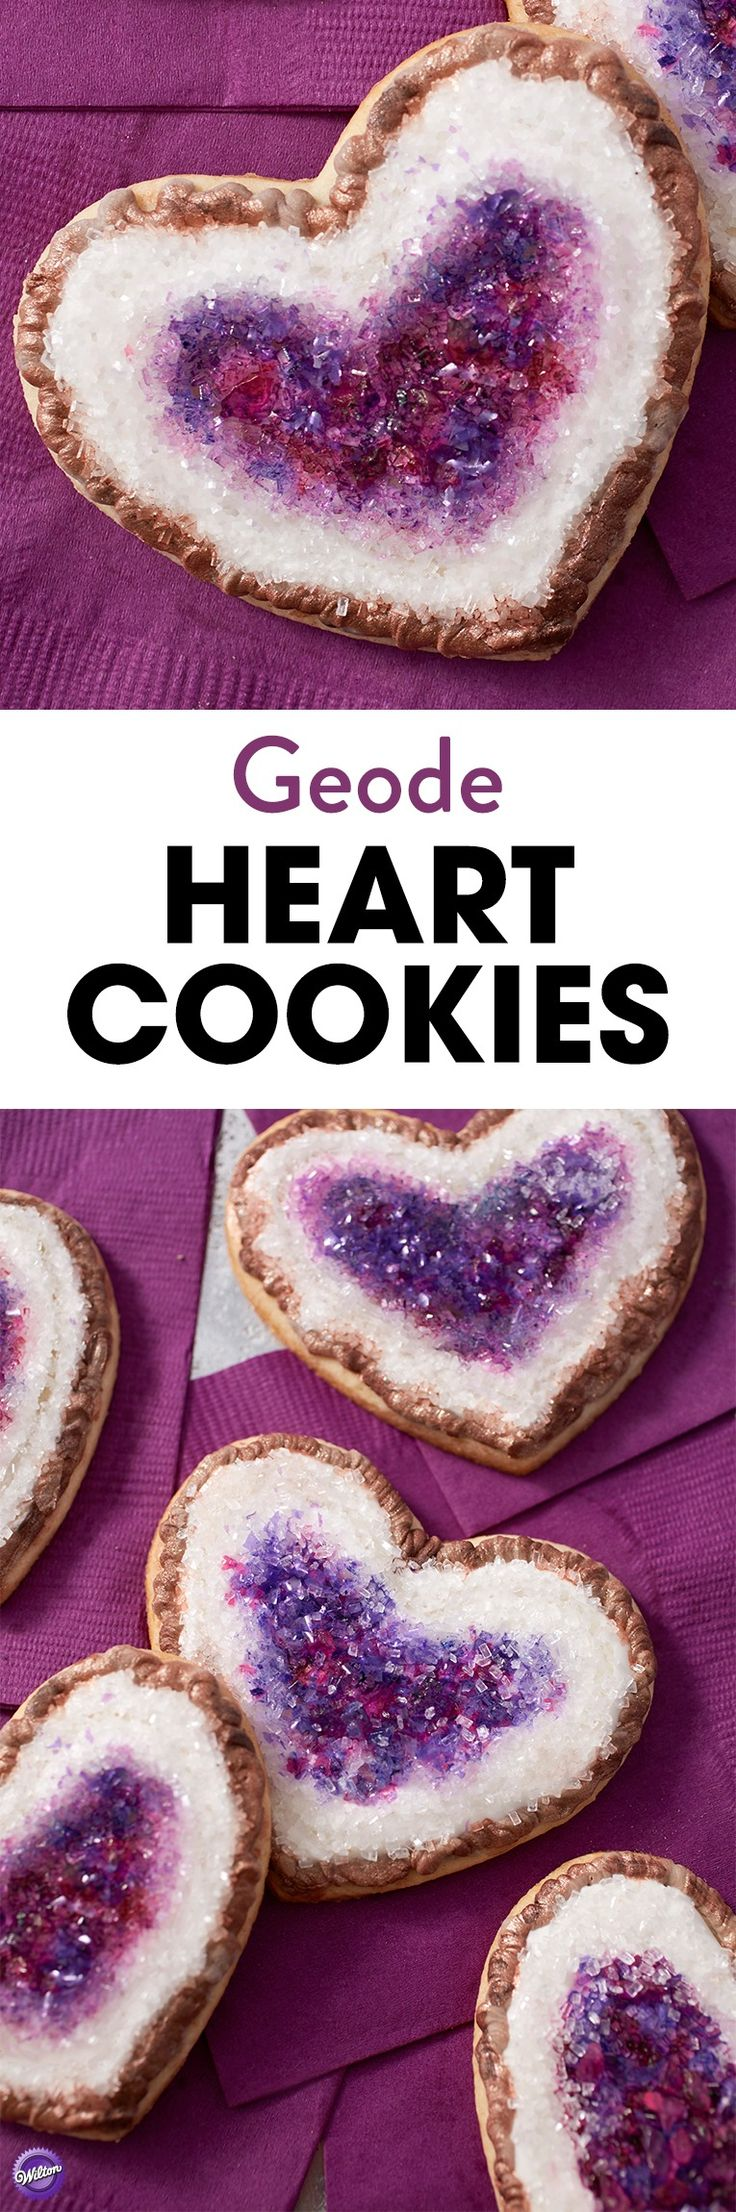 No need to go digging for diamonds…these Geode Heart Cookies will make your ki...